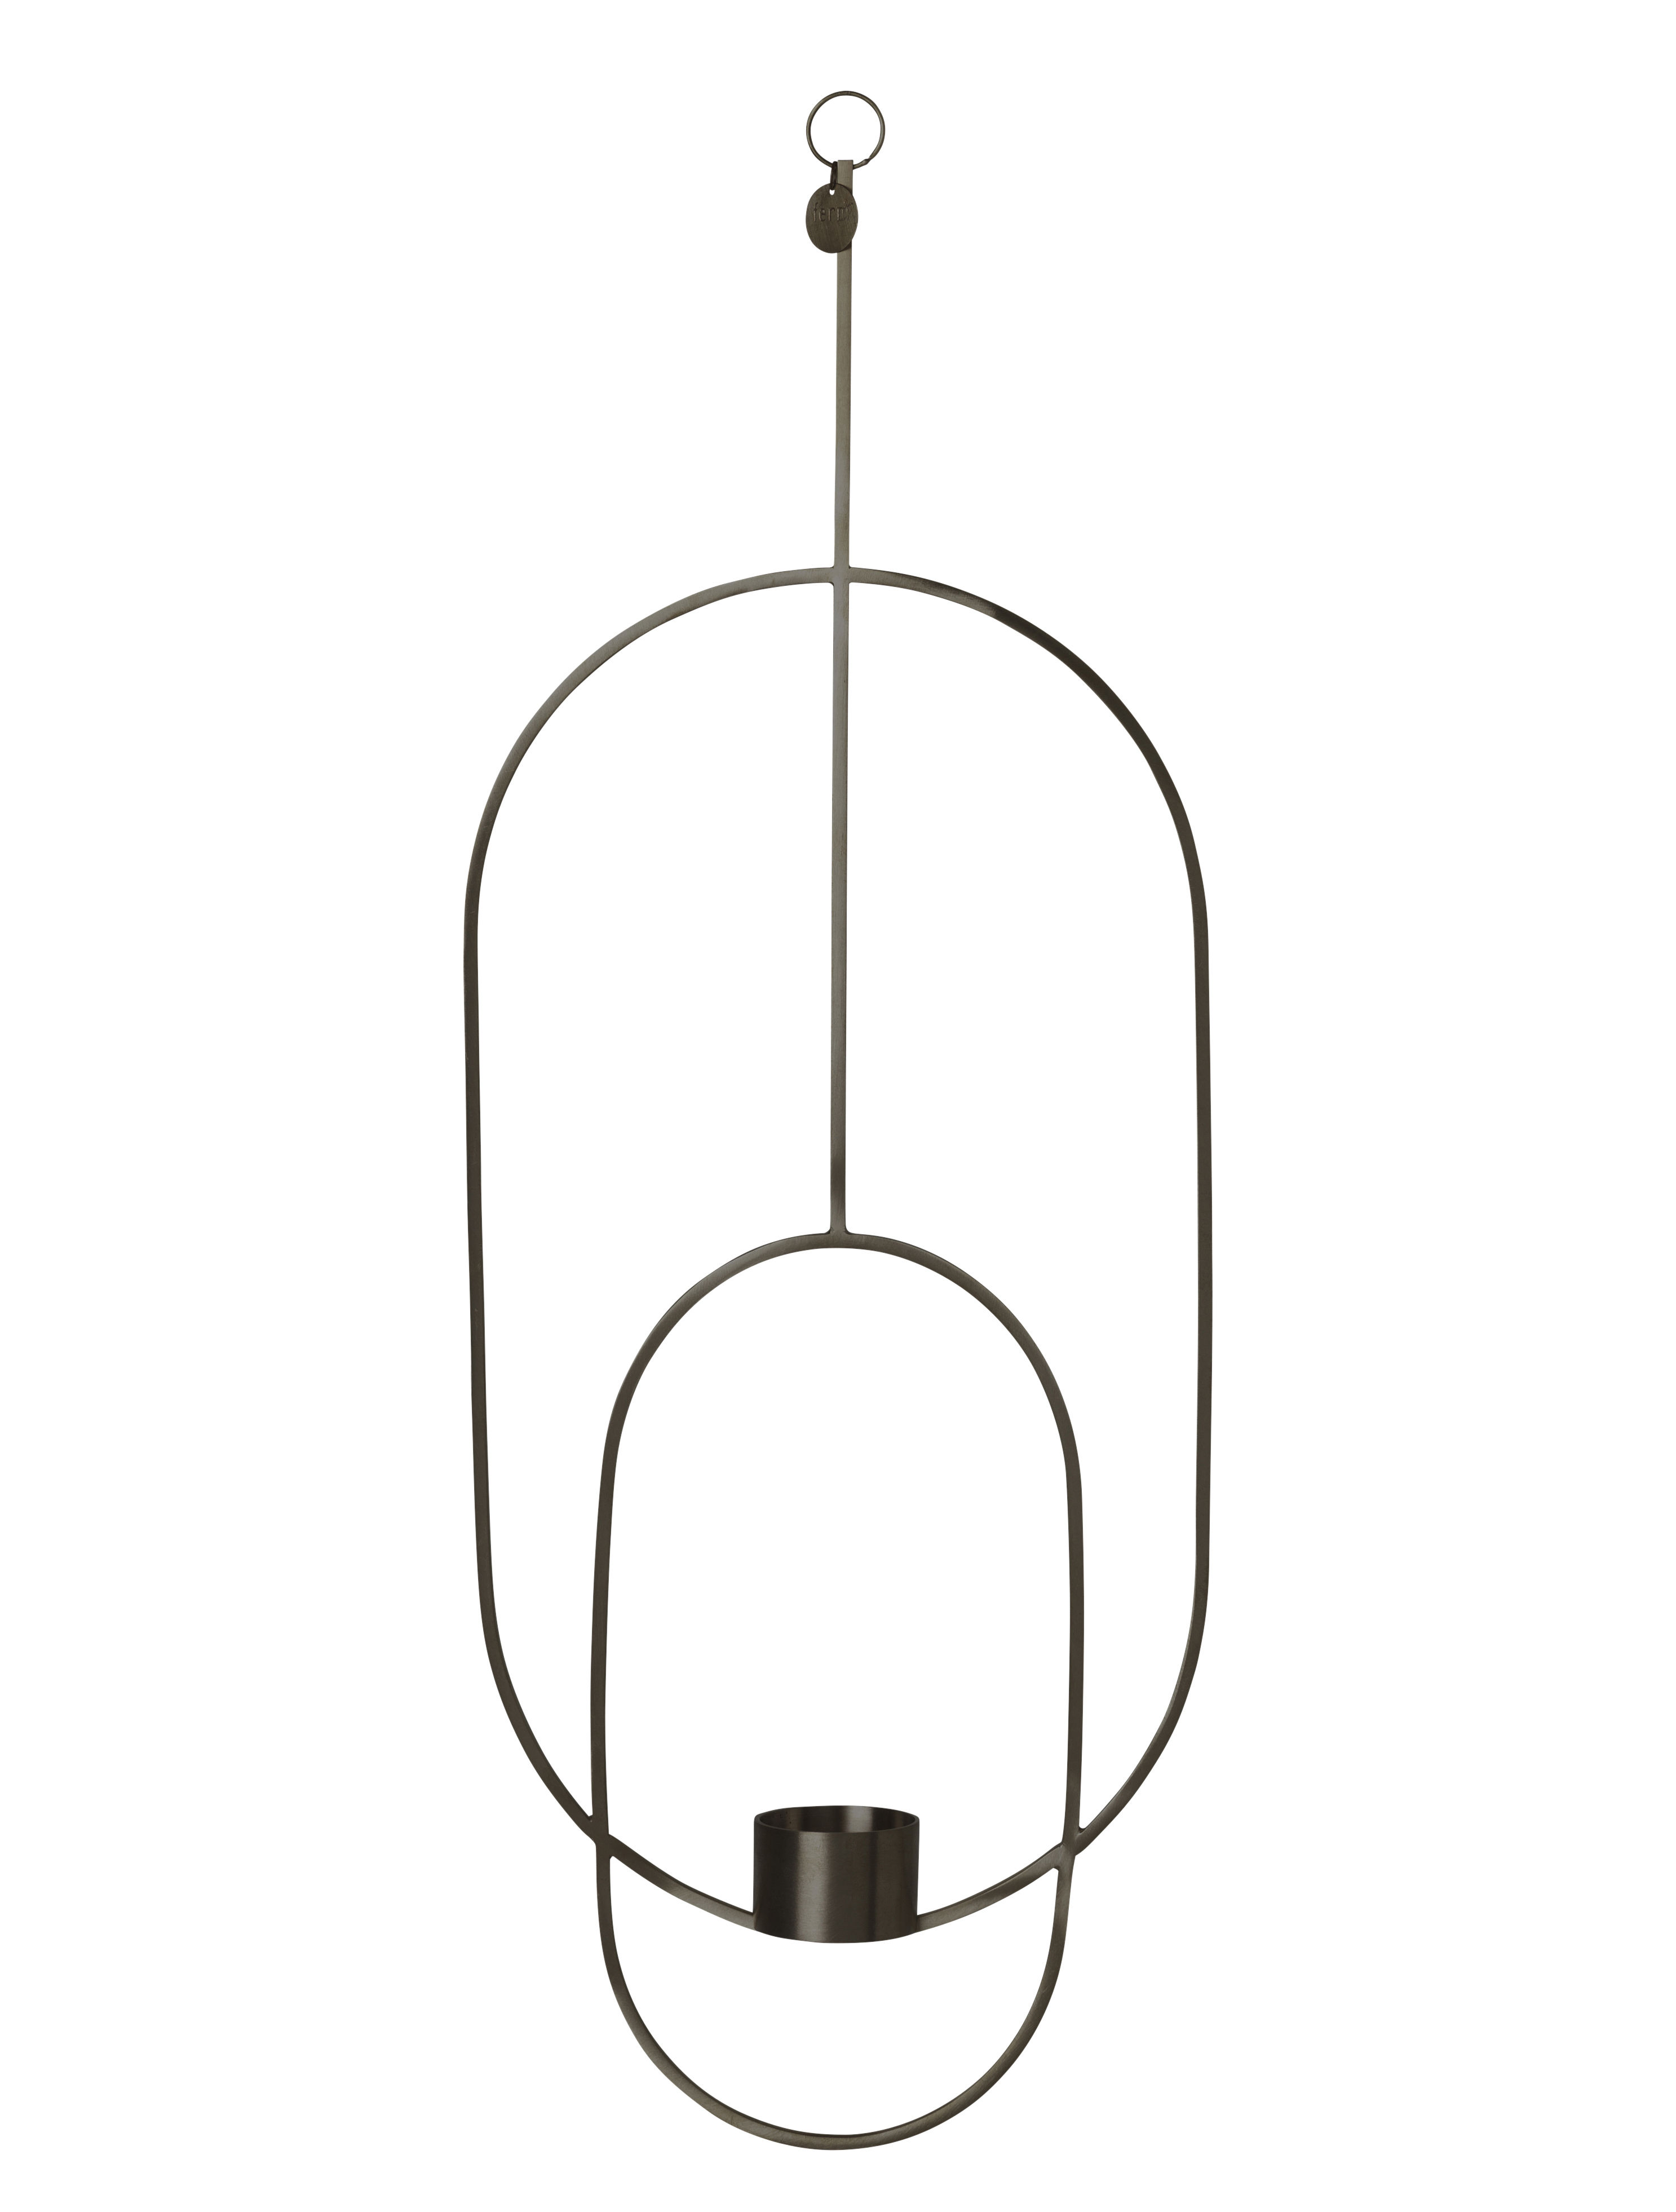 Decoration - Candles & Candle Holders - Oval Candlestick to hang - /  L 18 x H 50 cm by Ferm Living - Black - Painted brass